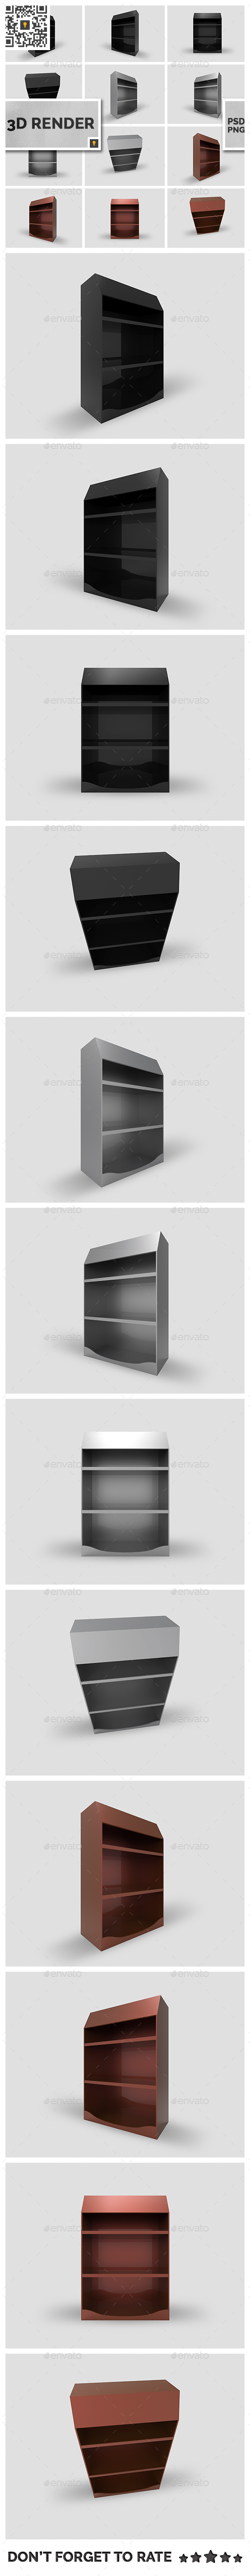 Promotional Shelf Display 3D Render - Objects 3D Renders